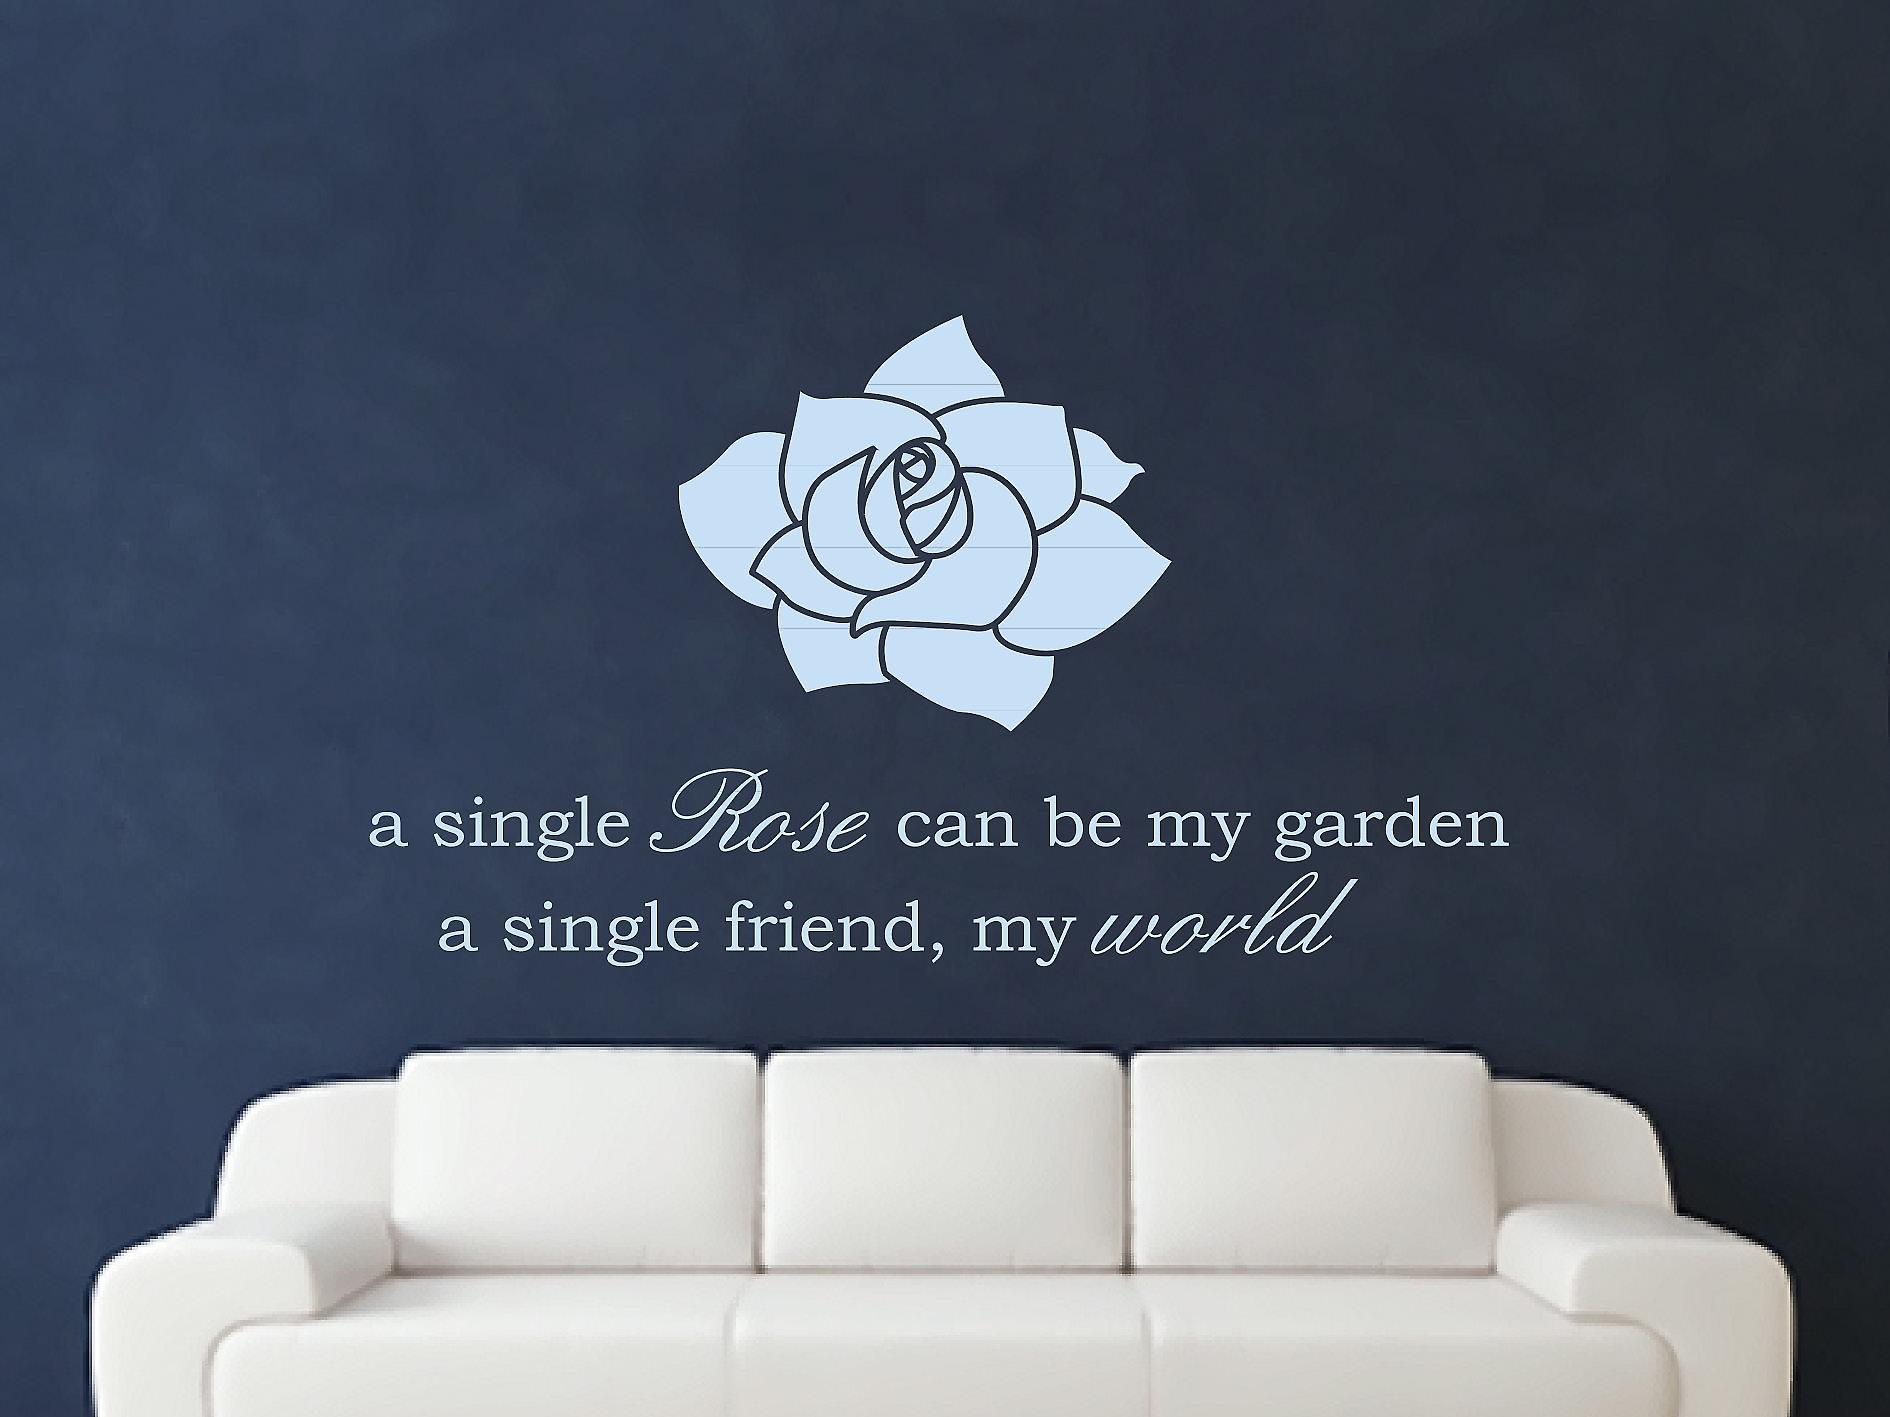 A Single Rose Wall Art autocollants - Pastel Bleu